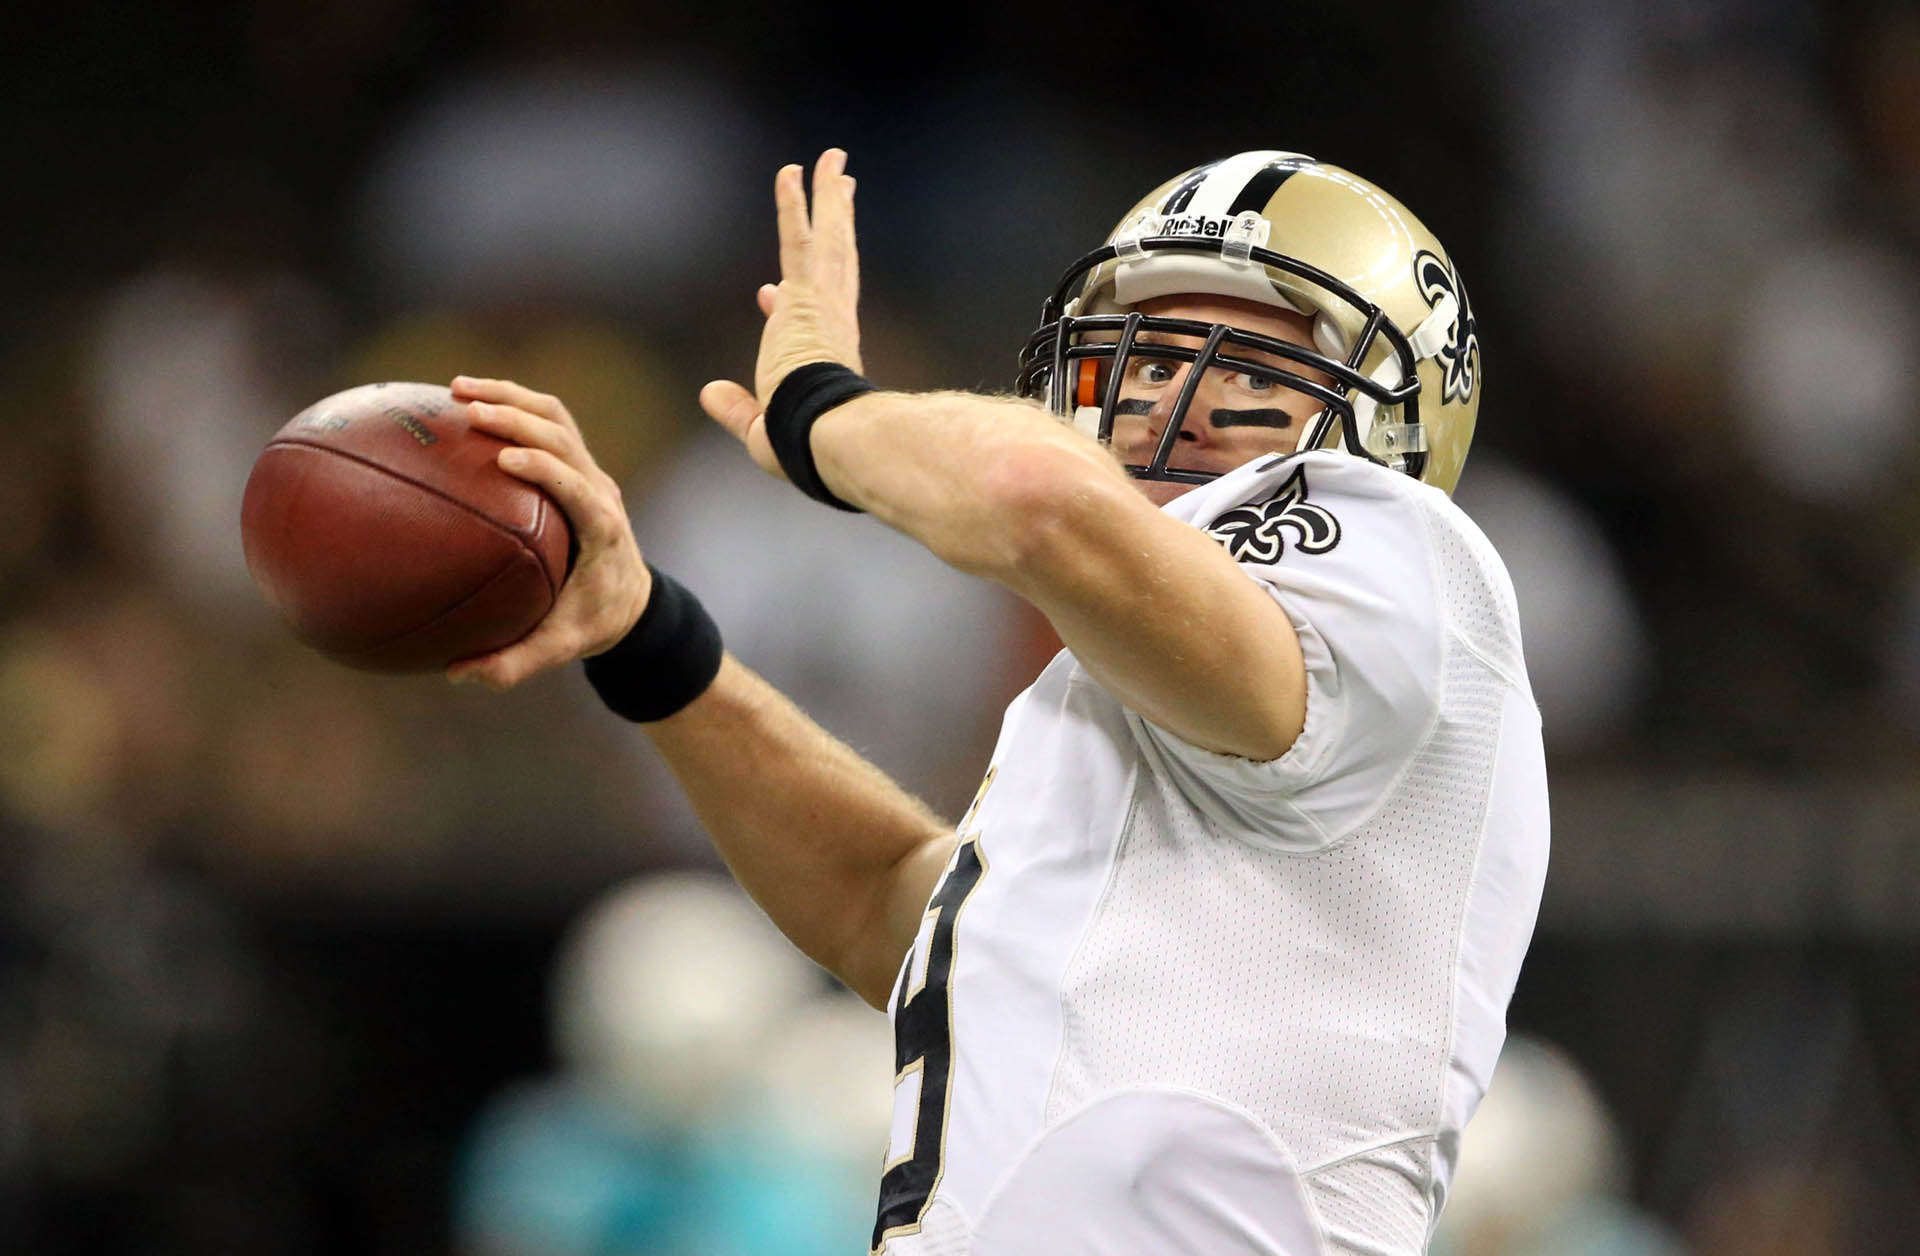 Get the latest updated stats for New Orleans Saints quarterback Drew Brees on ESPNcom